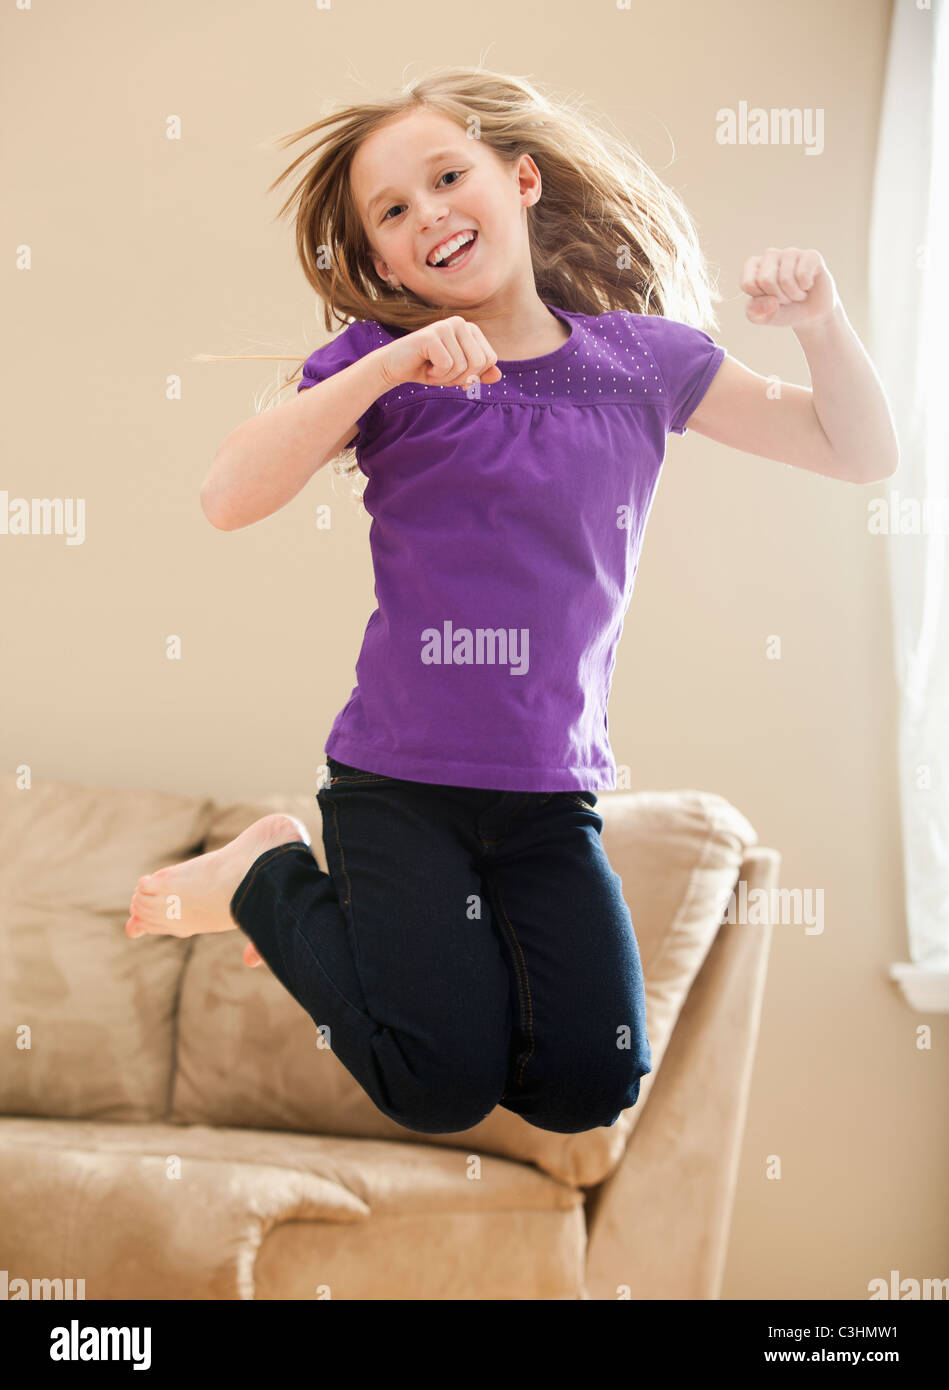 Portrait of girl (8-9) jumping - Stock Image